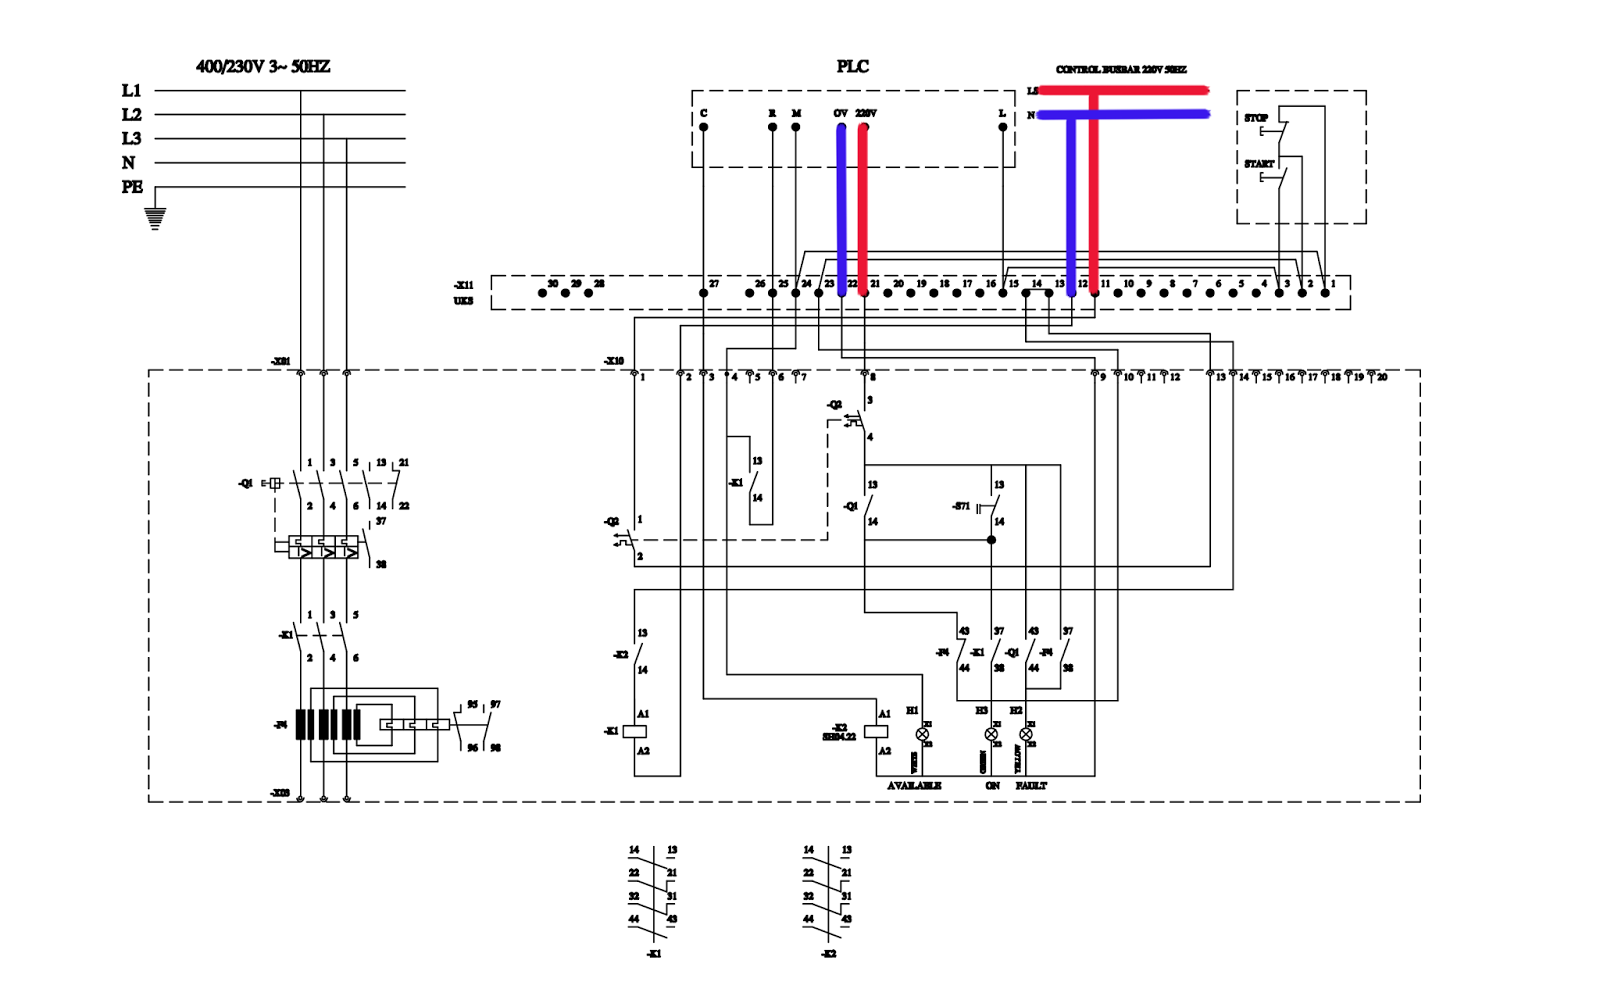 wiring diagram plc panel signal stat 900 get free image about